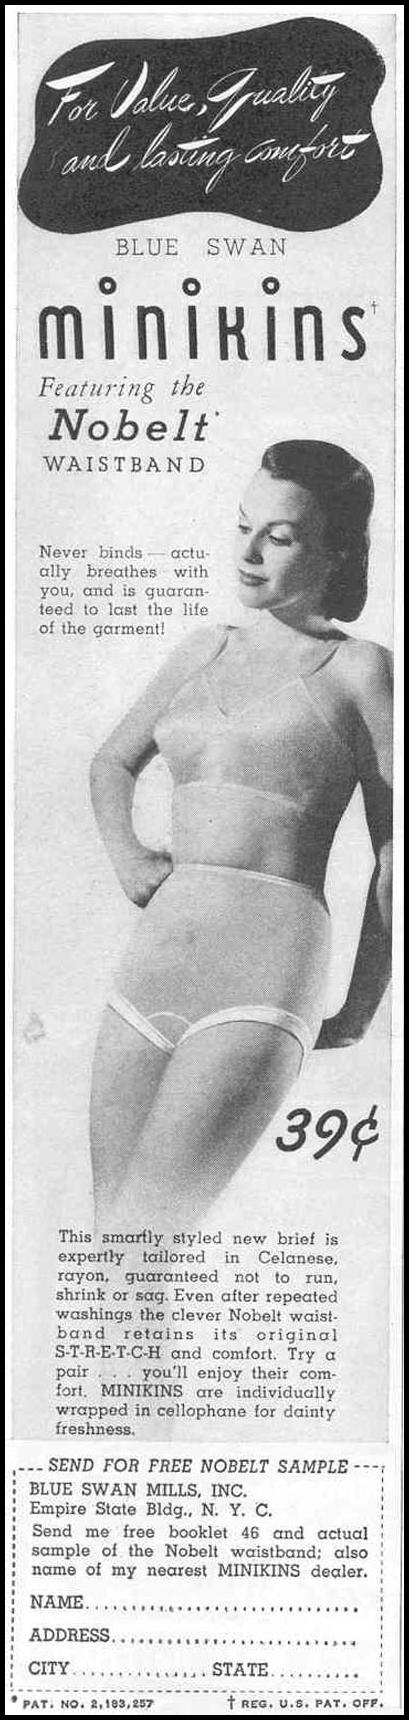 BLUE SWAN UNDIES GOOD HOUSEKEEPING 03/01/1940 p. 176